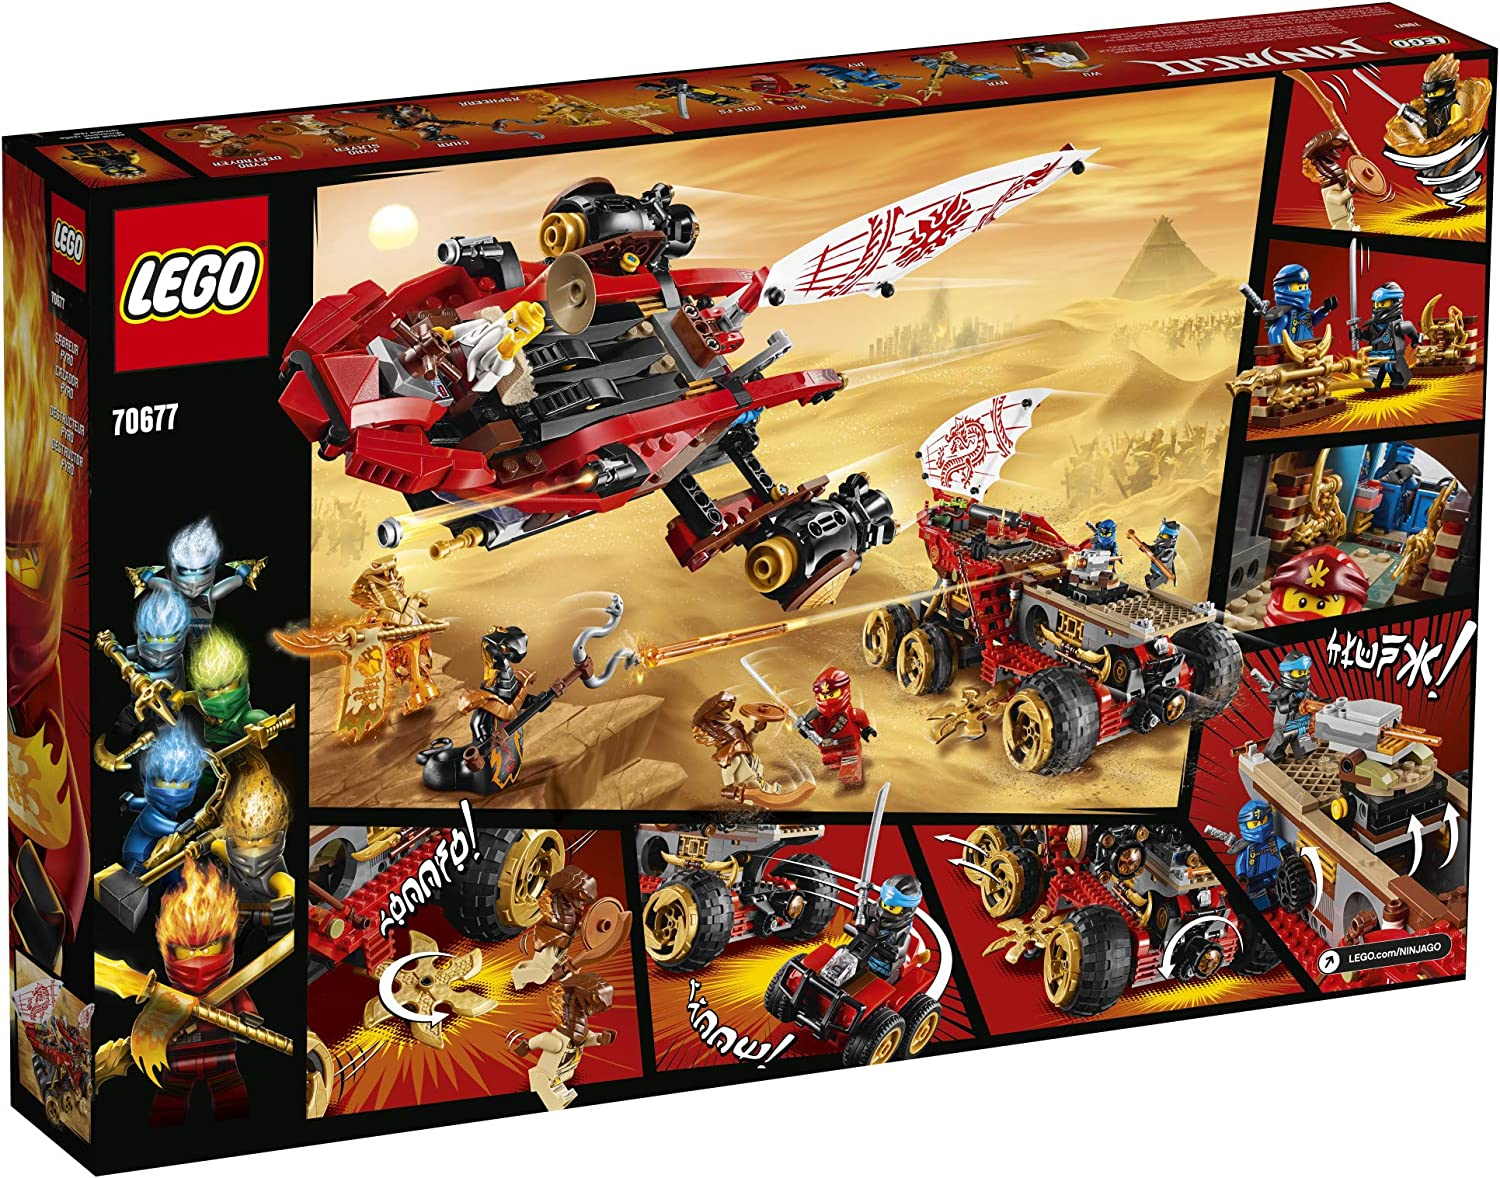 1,178 Pieces Popular Action Toy with Two Toy Vehicles and Toy Ninja Weapons for Creative Play LEGO NINJAGO Land Bounty 70677 Toy Truck Building Set with Ninja Minifigures